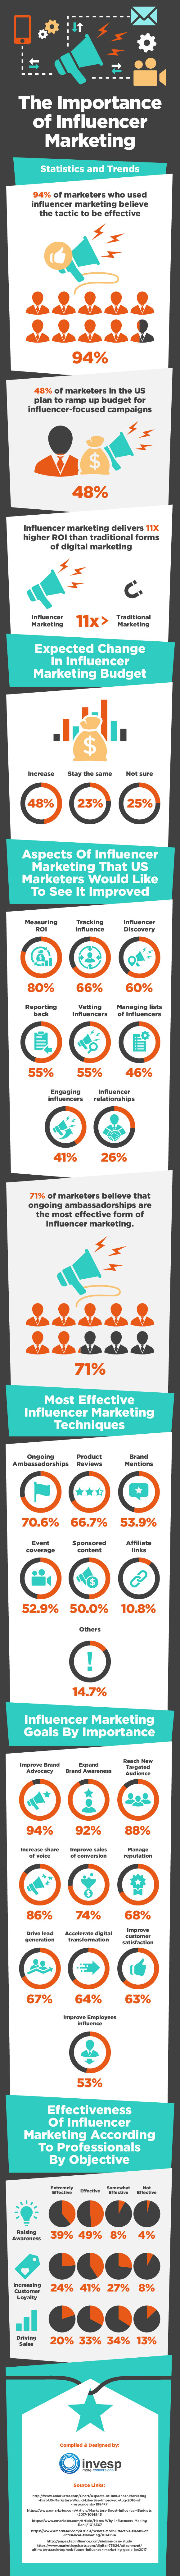 Influencer marketing statistics and trends